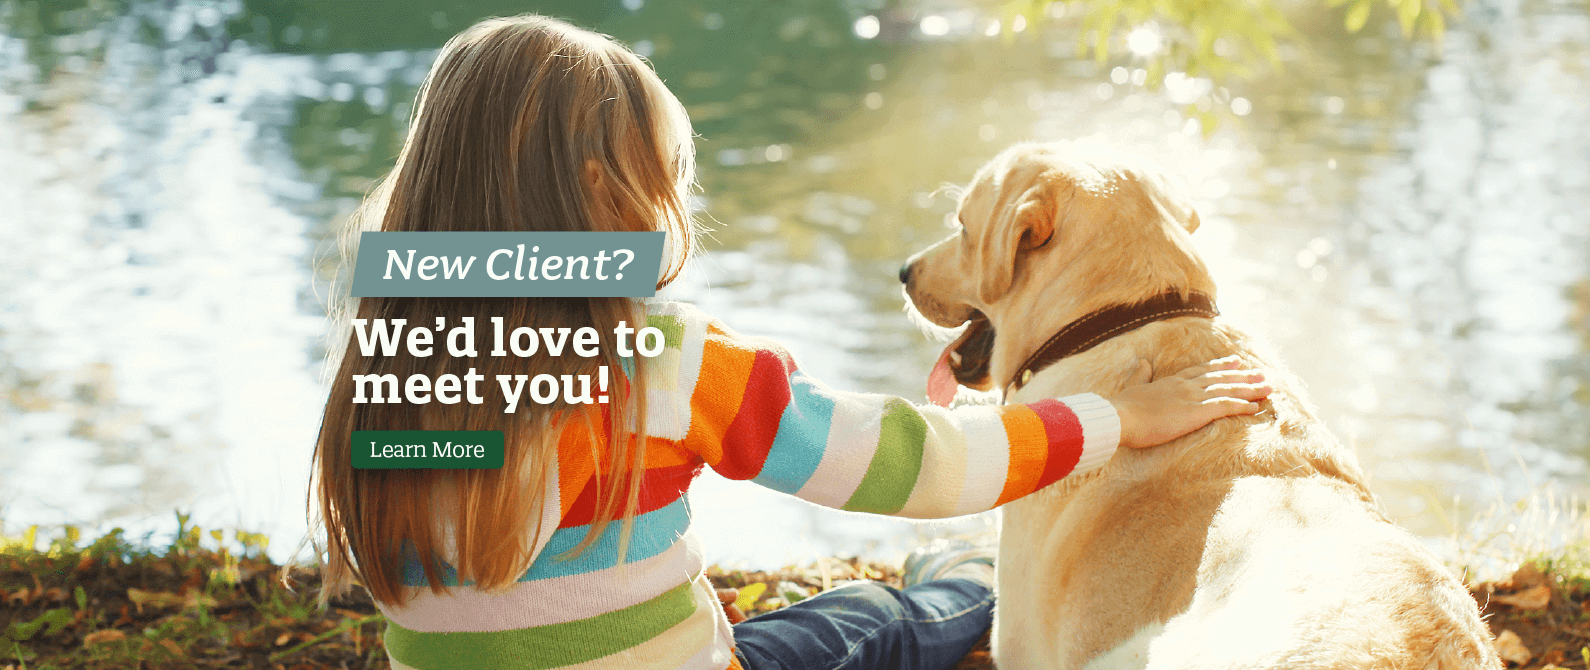 New Client? We'd love to meet you